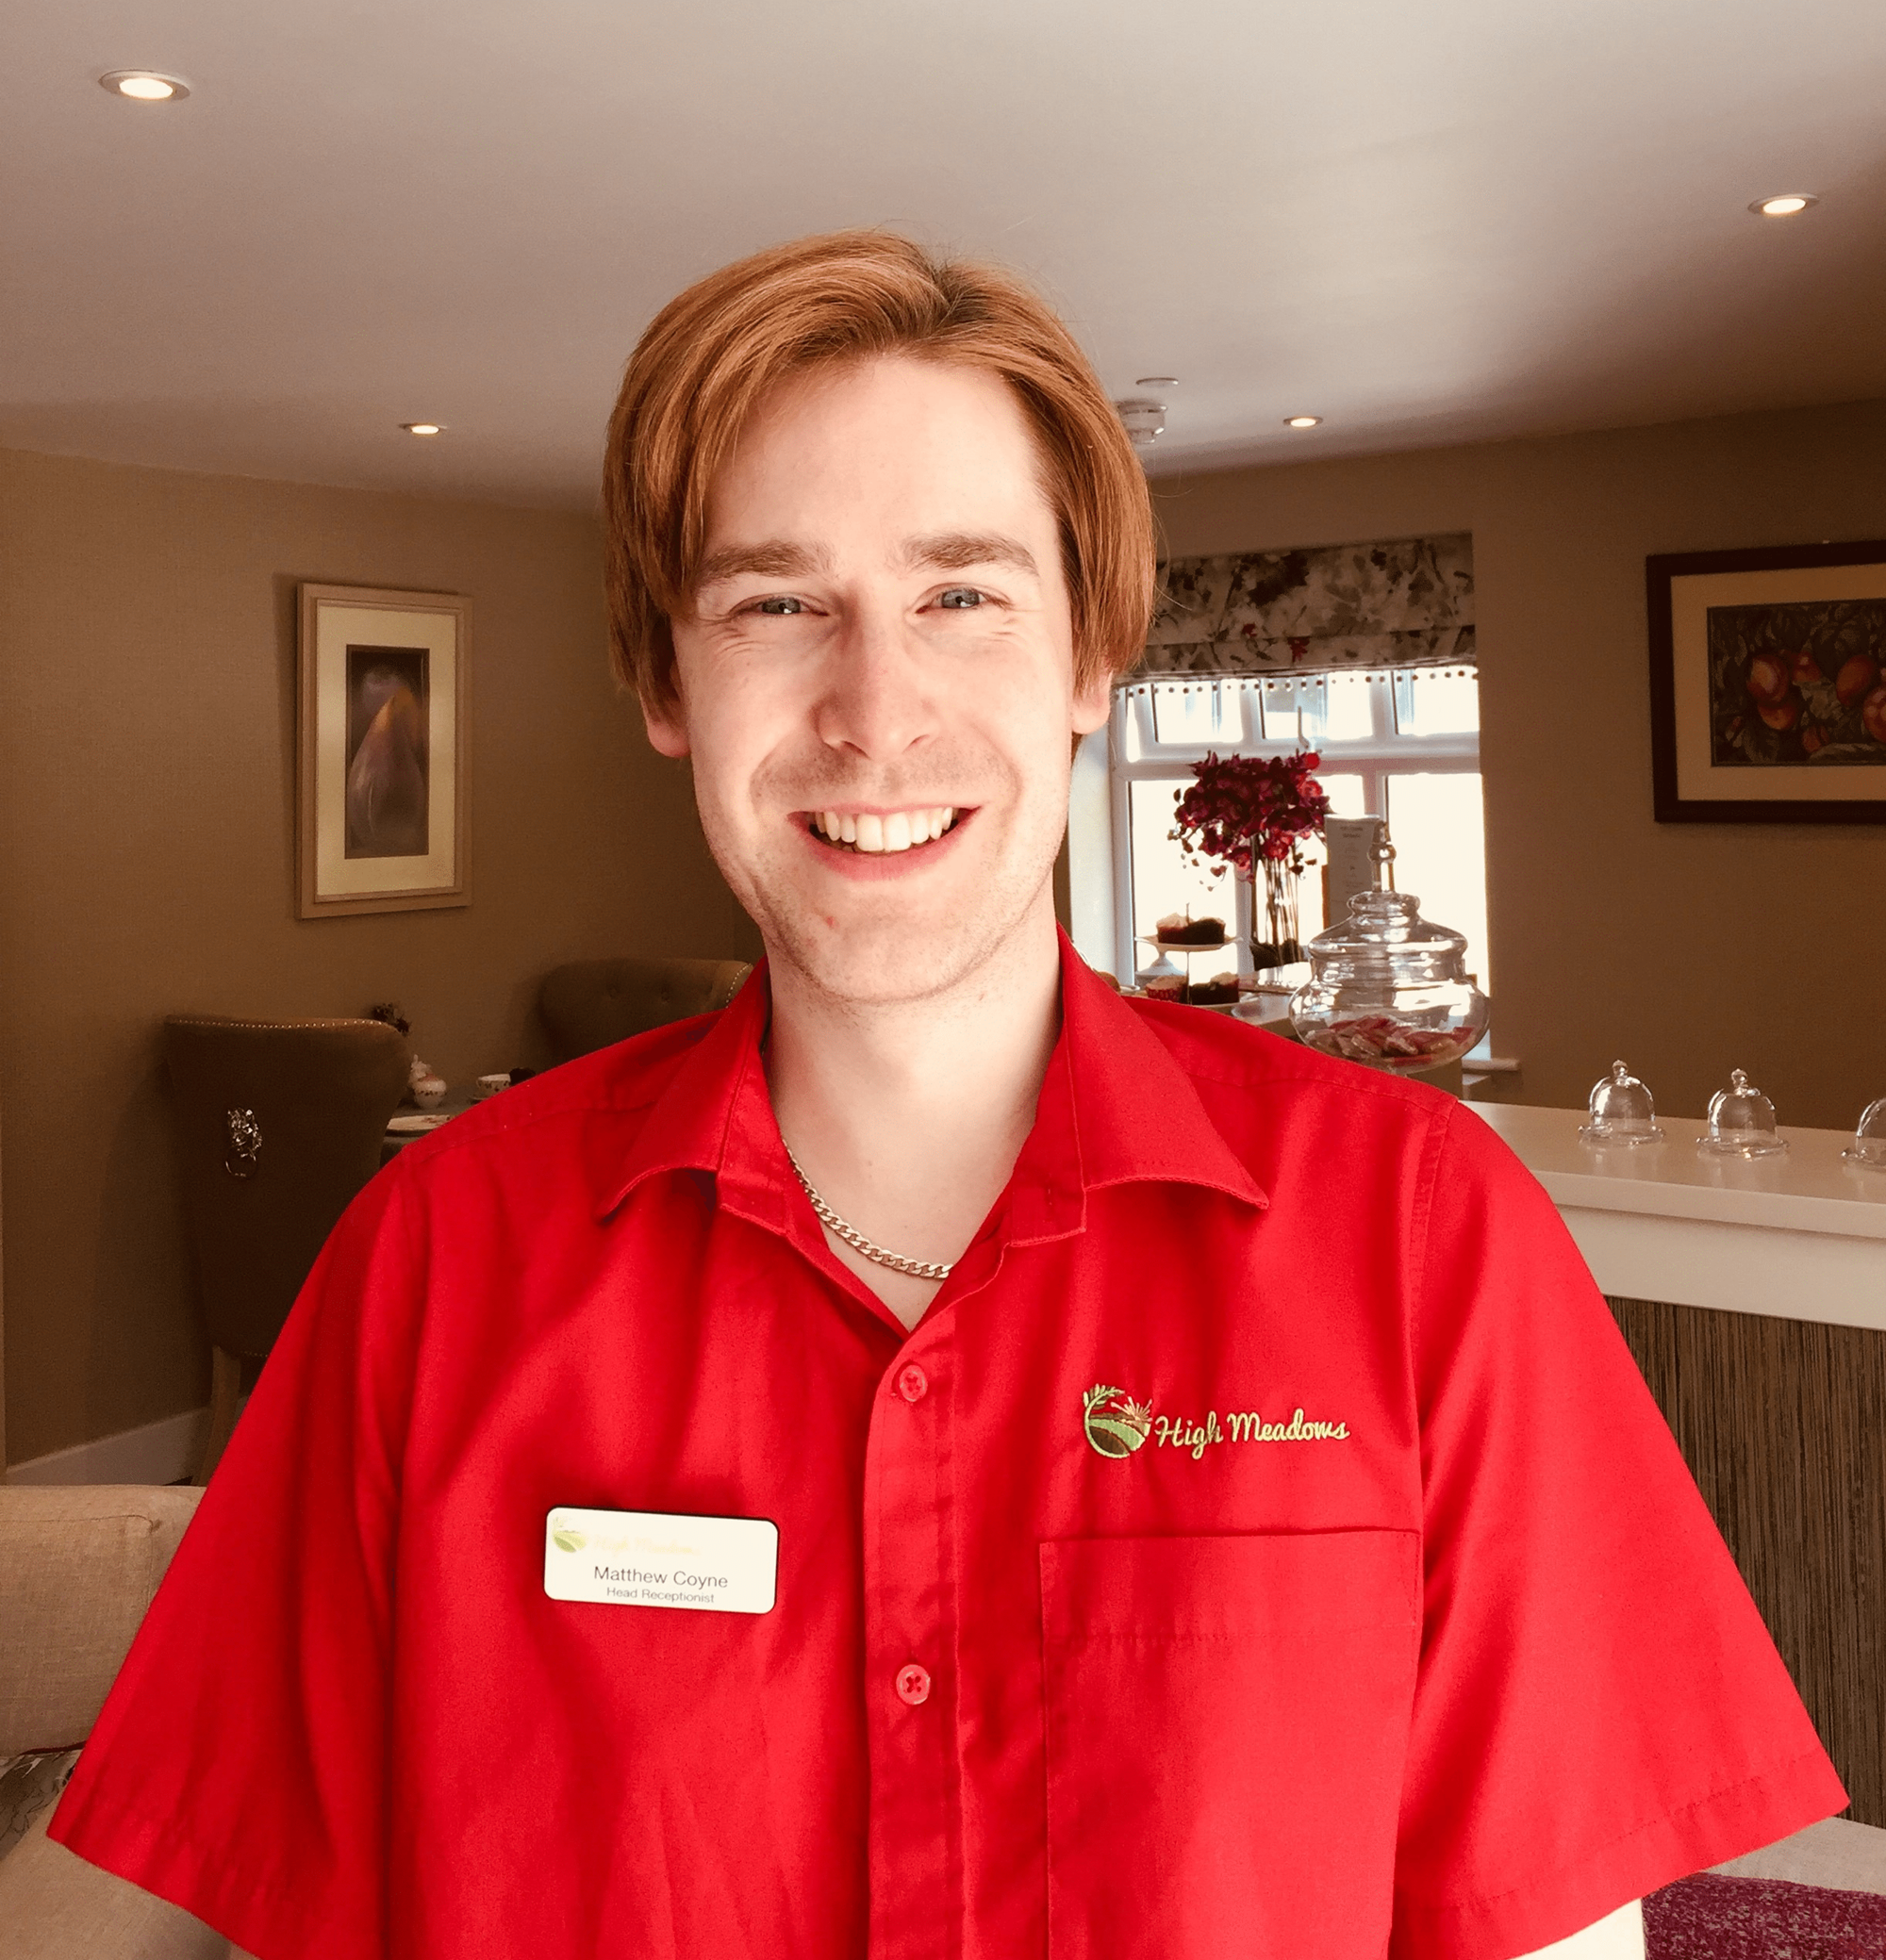 Matthew Coyne - Head Receptionist at High Meadows Care Home